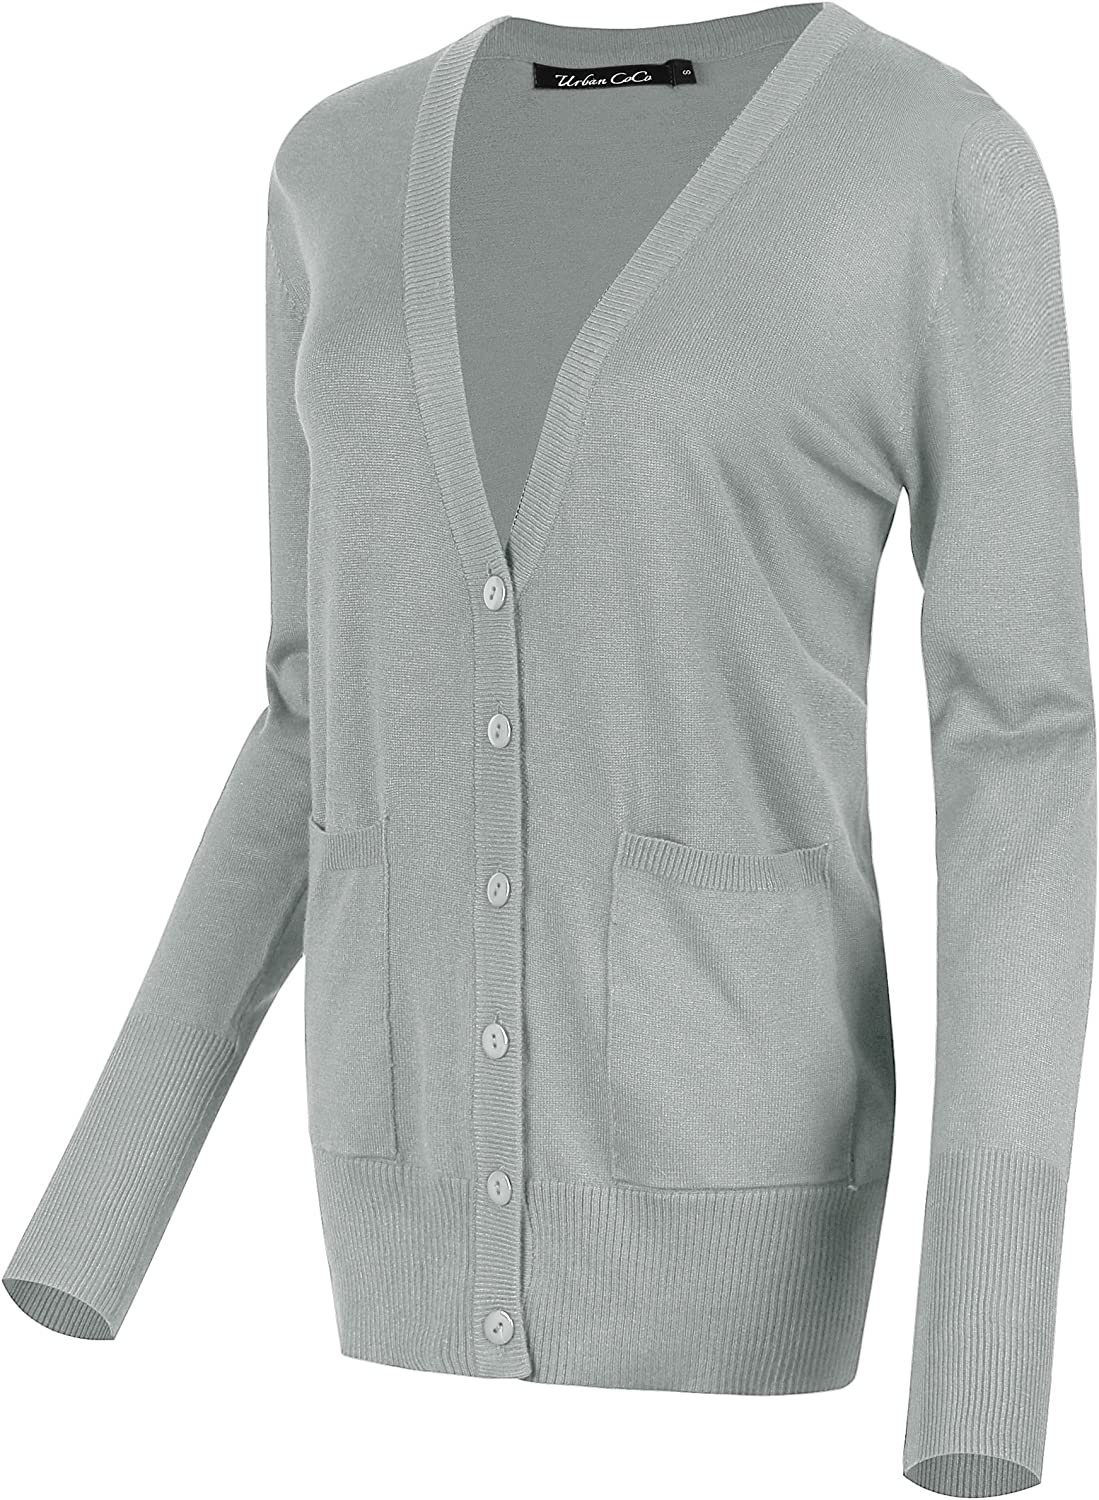 Urban CoCo At the price Women's Manufacturer regenerated product Button Down Sweater Knit Lightweight Cardigan